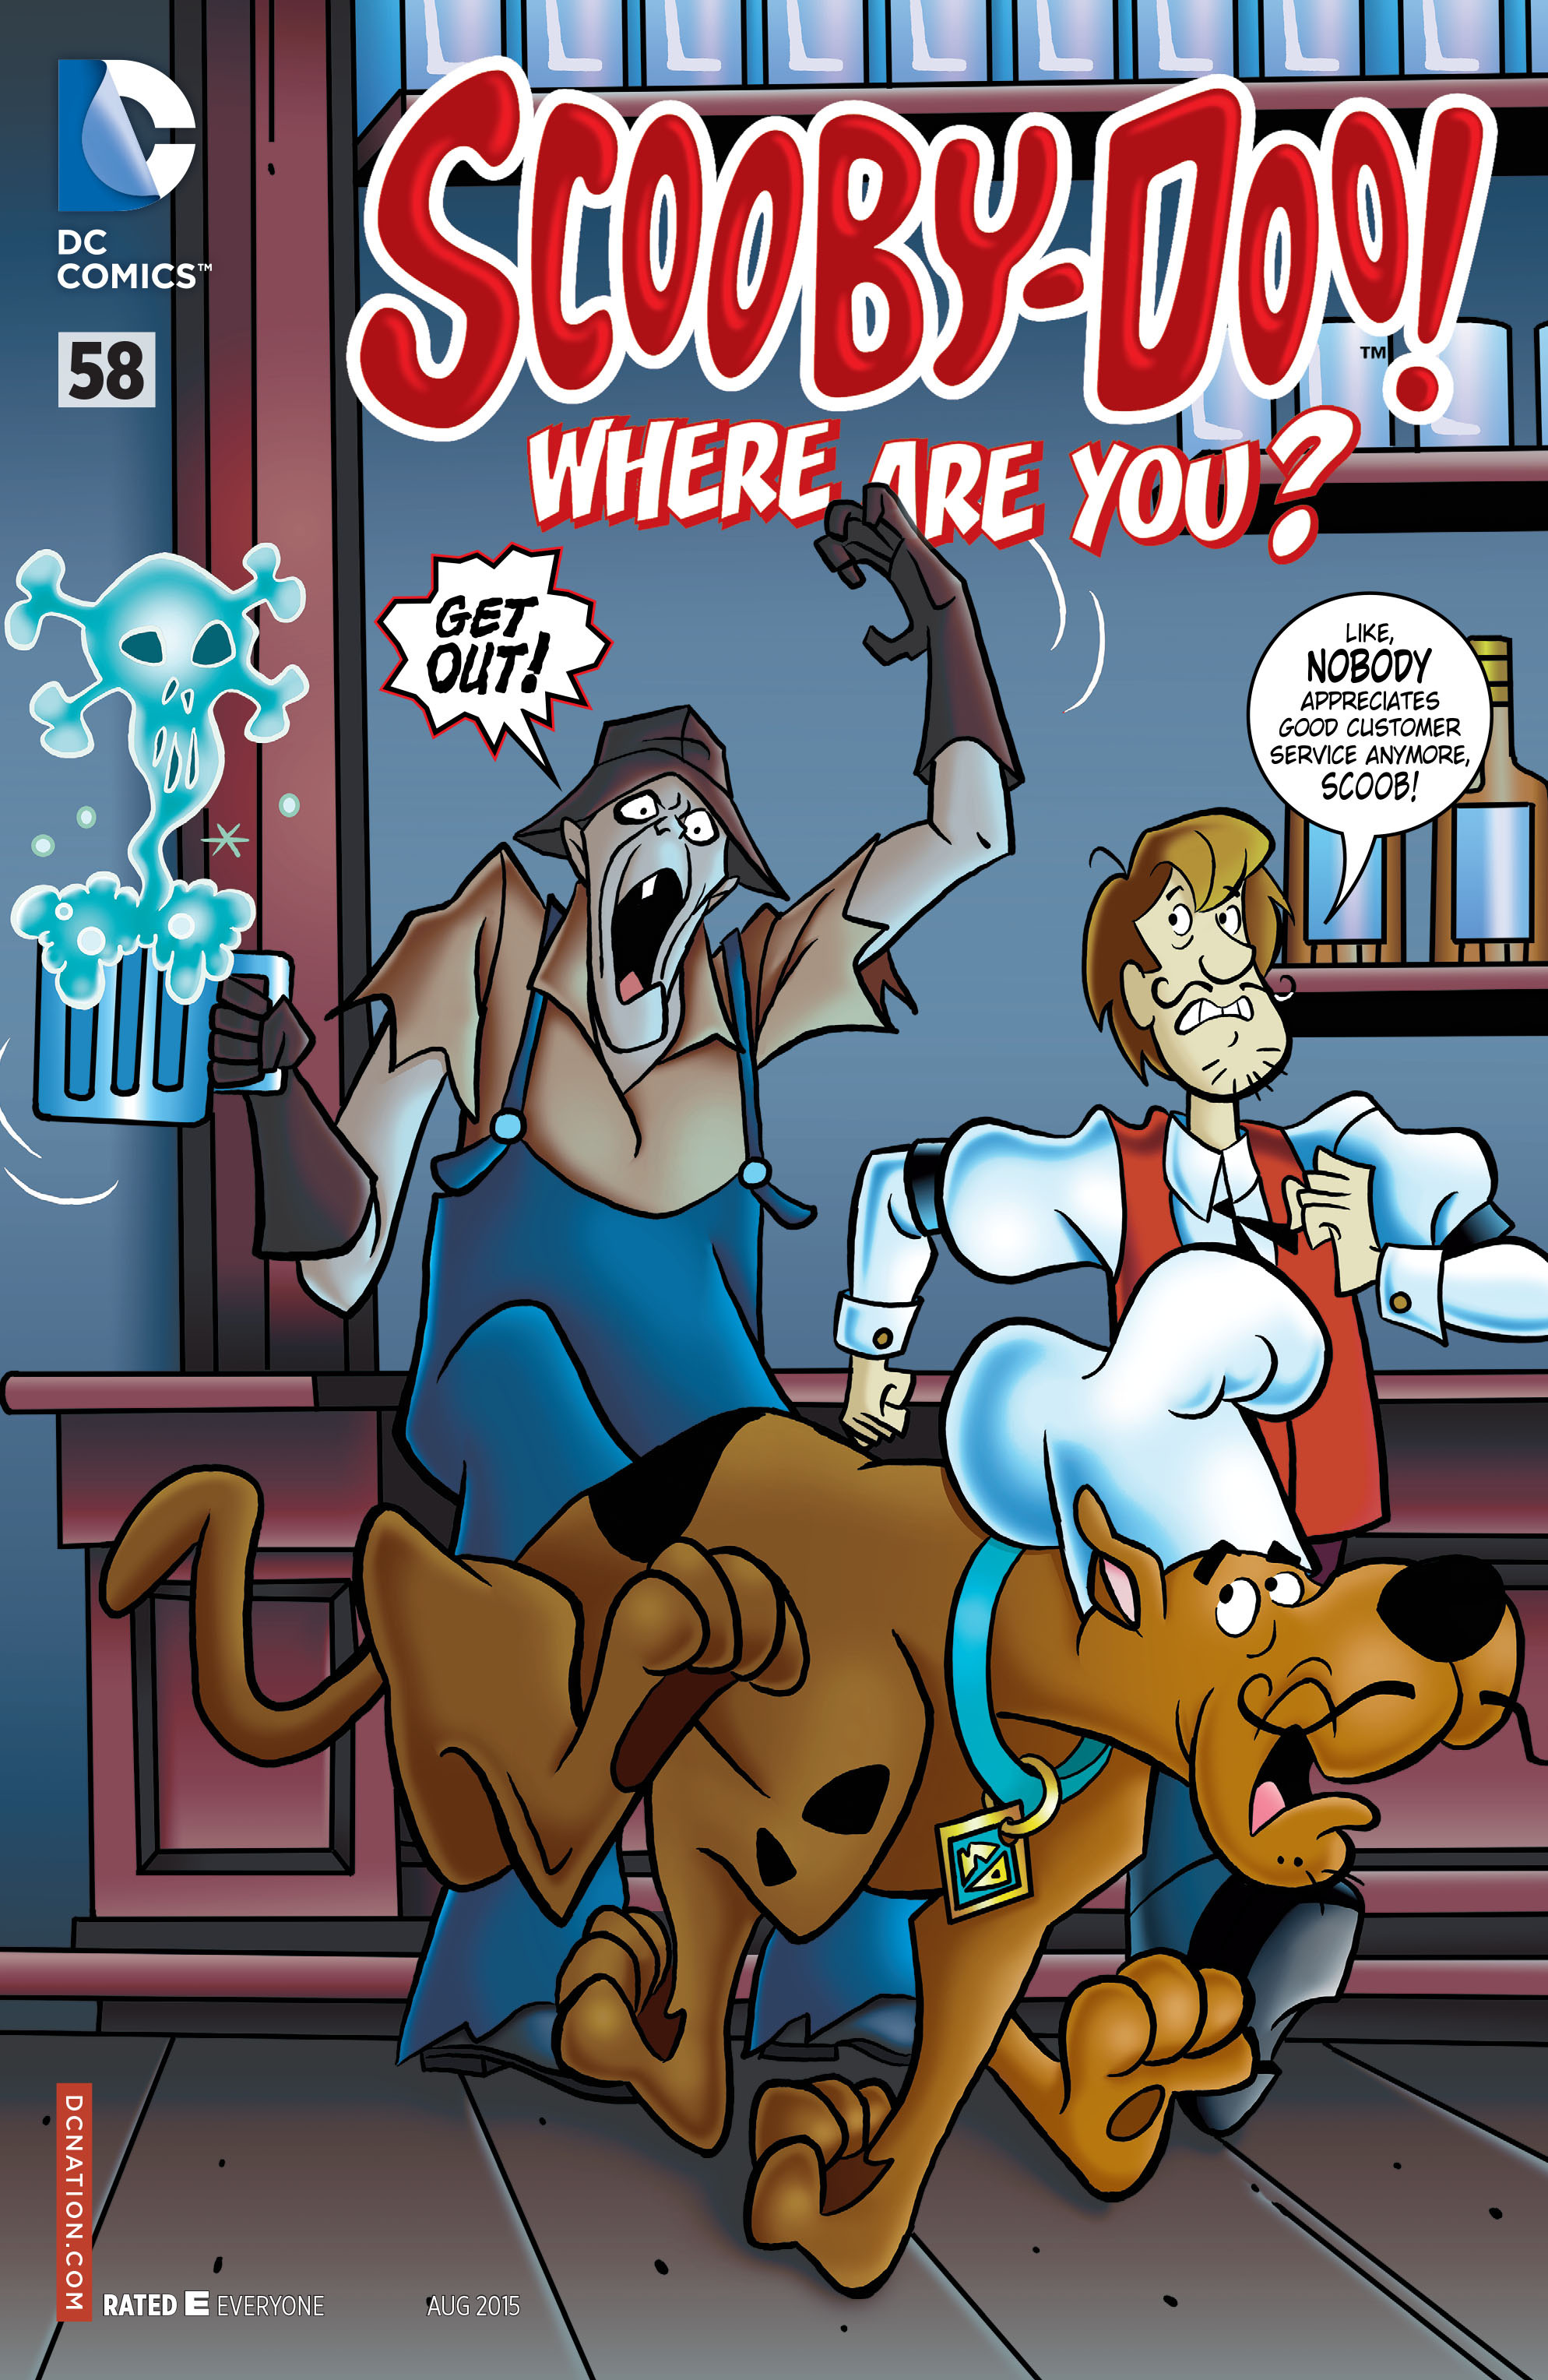 Read online Scooby-Doo: Where Are You? comic -  Issue #58 - 1